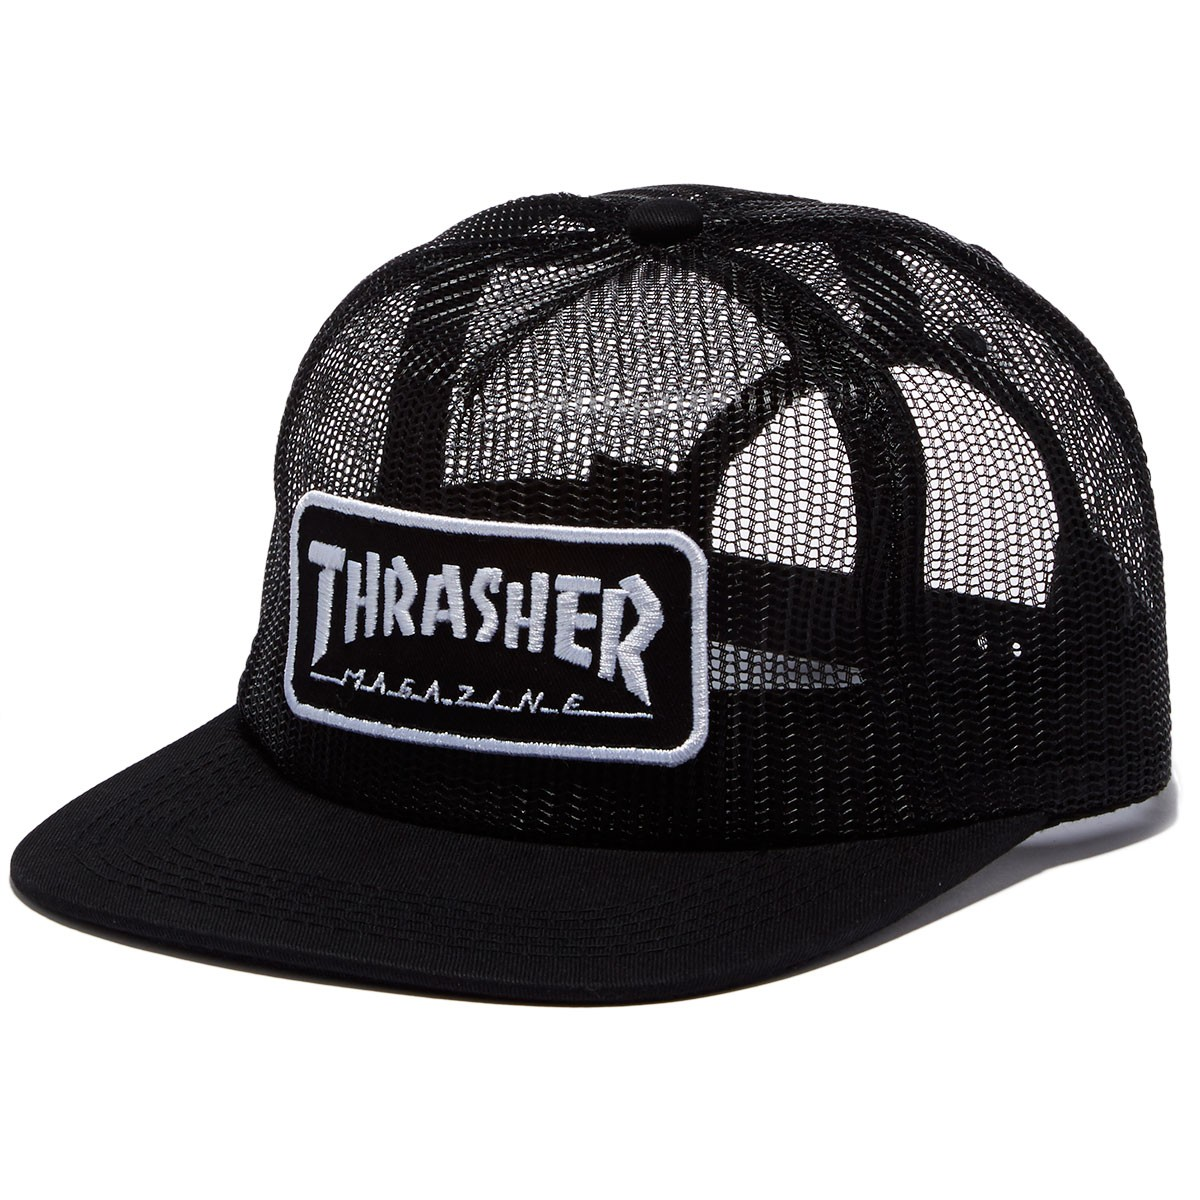 Thrasher Magazine Logo Mesh Hat - Black/White